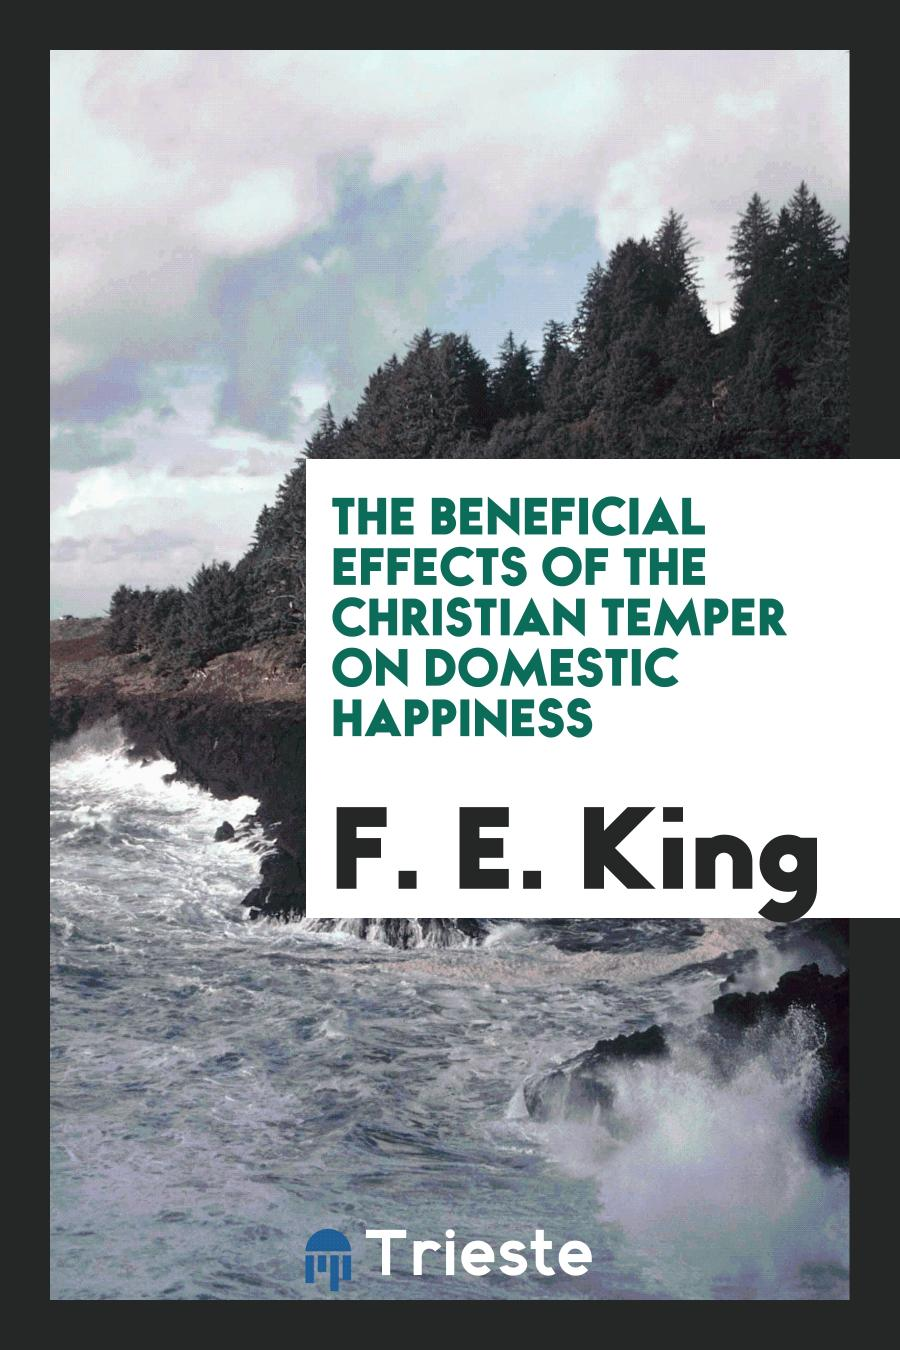 The Beneficial Effects of the Christian Temper on Domestic Happiness